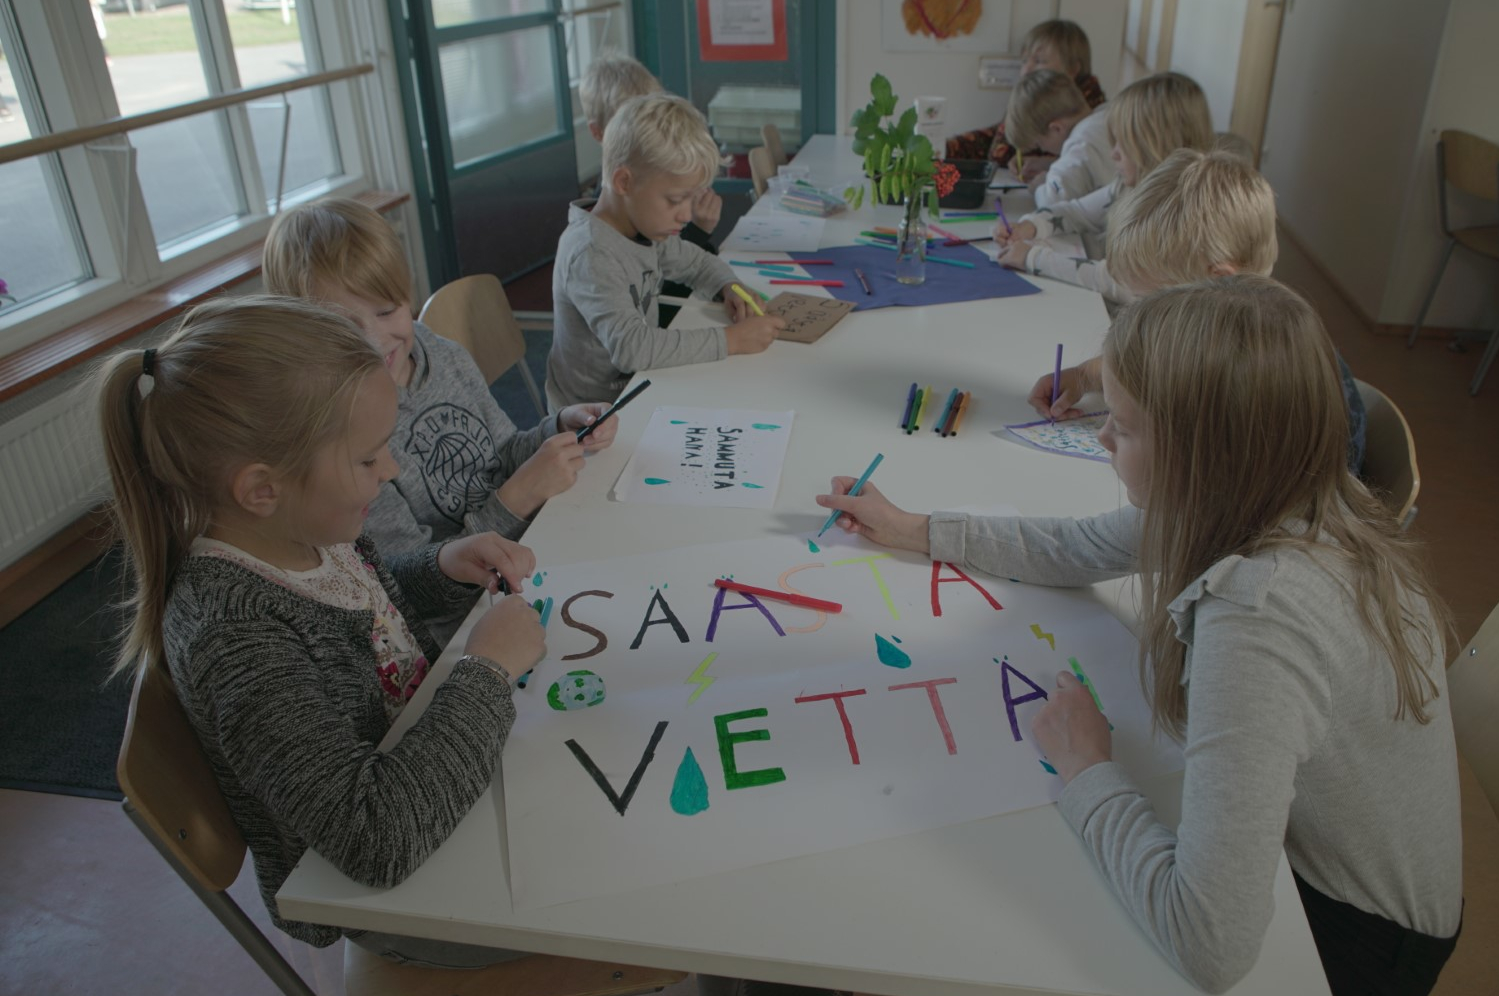 Schoolchildren sit around a long table drawing.